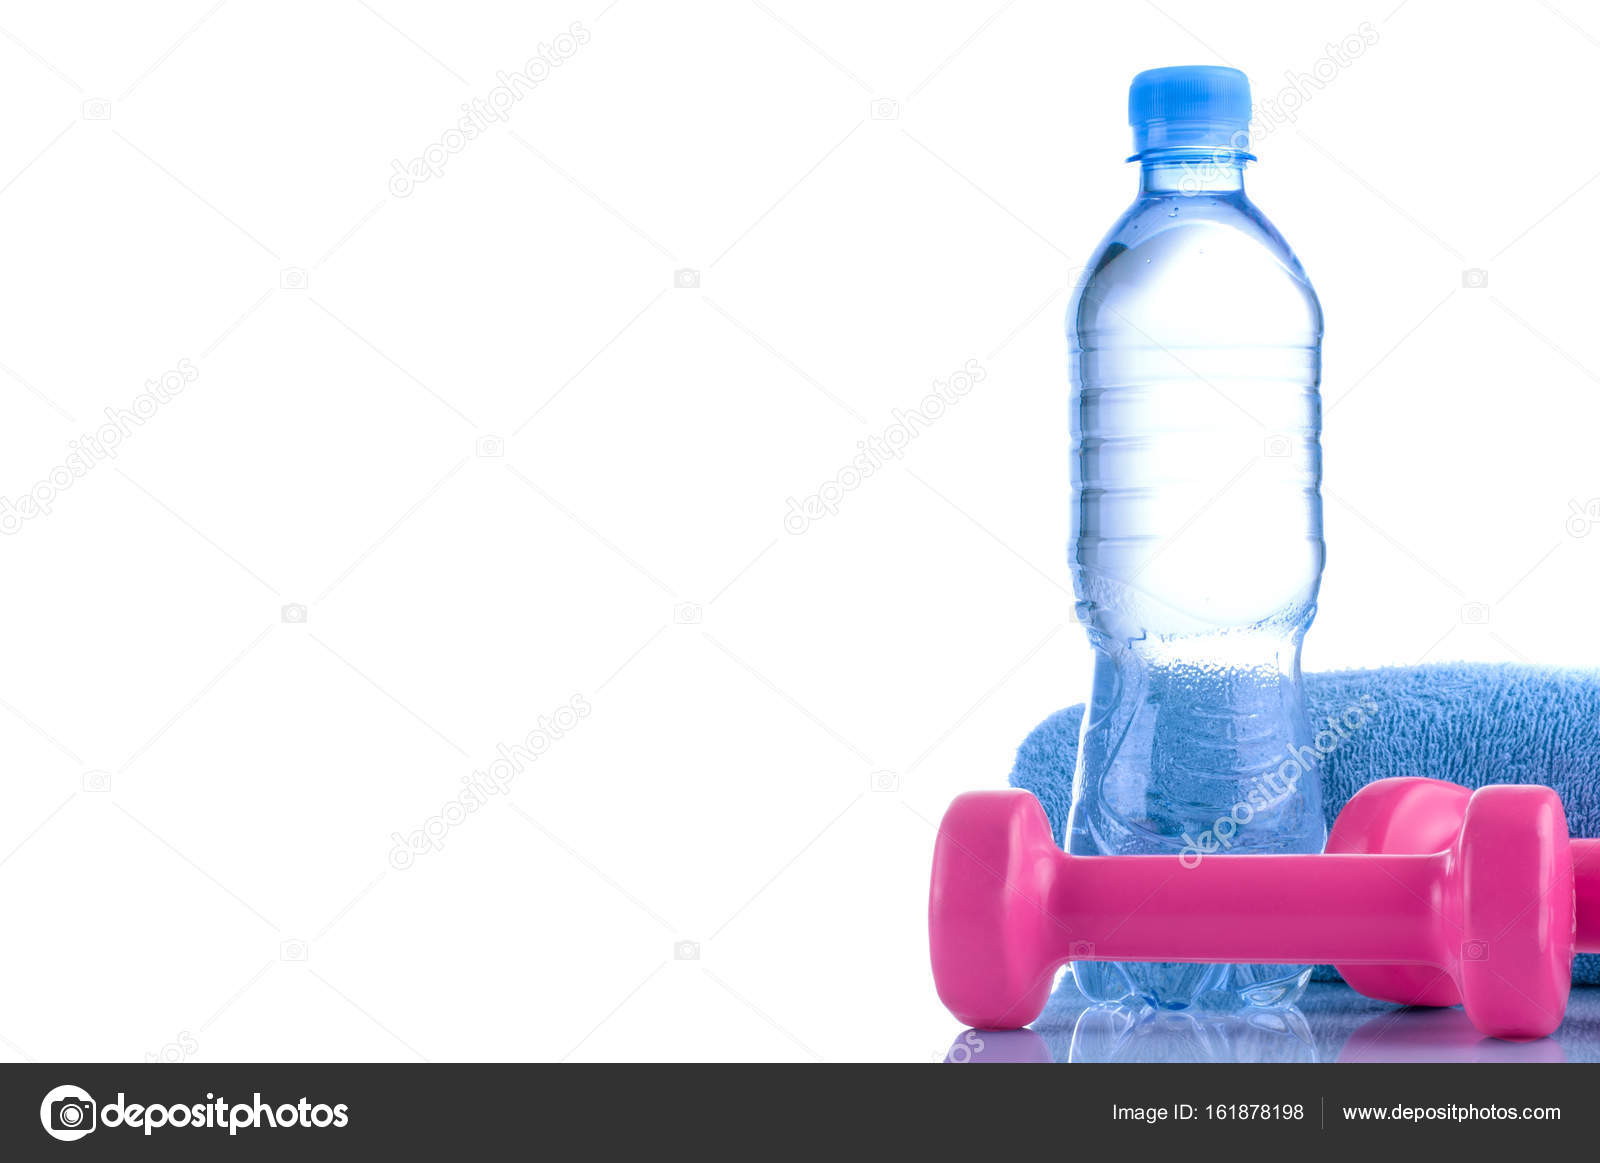 Fitnes Symbols Pink Dumbbells A Bottle Of Water And A Towel The